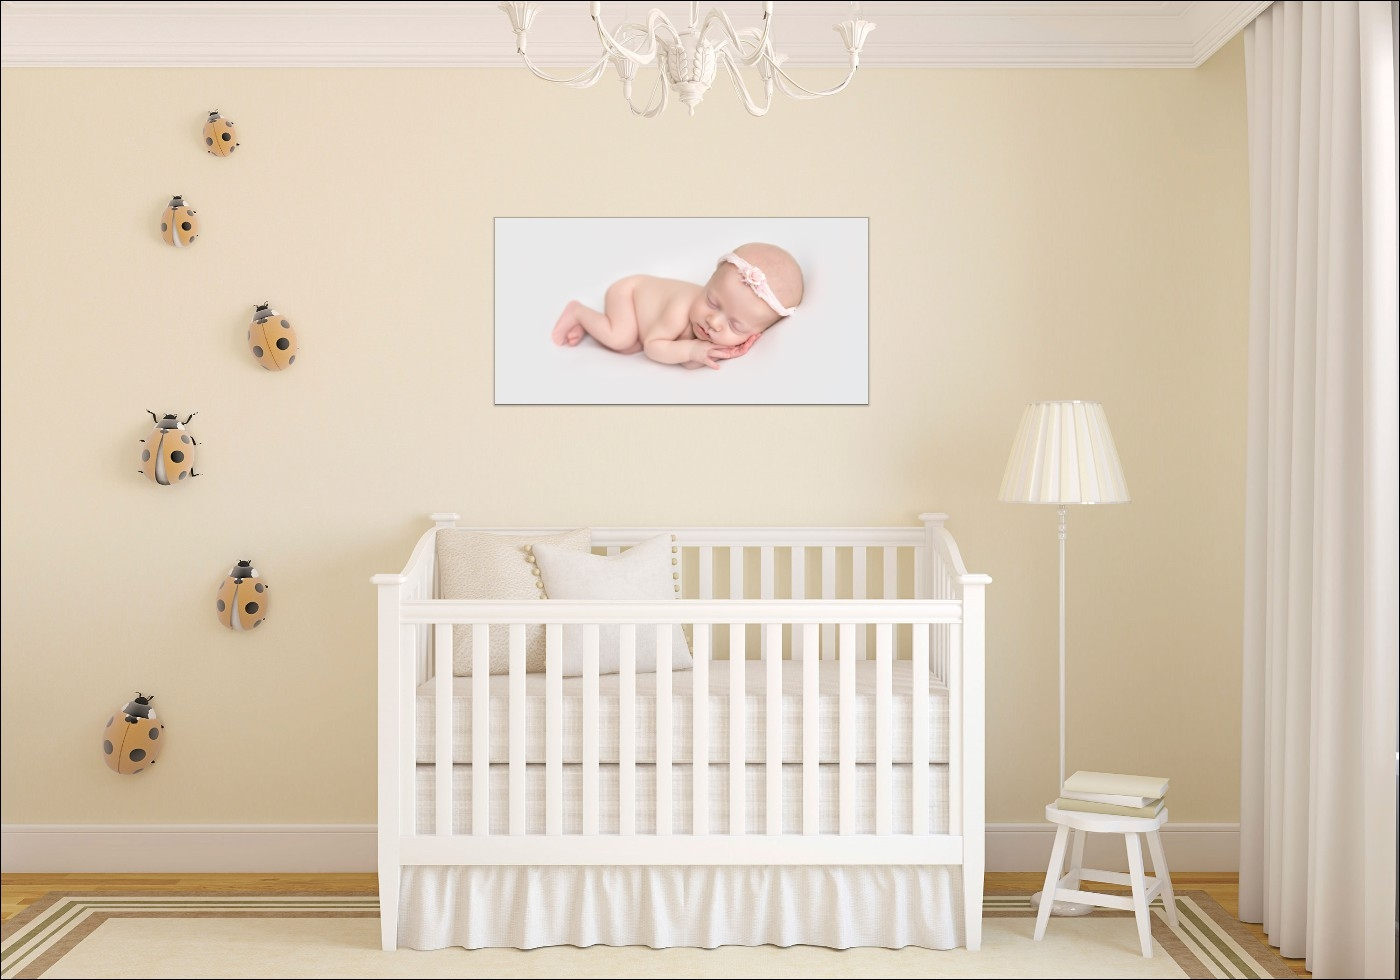 Newborn wall portrait canvas knoxville studio (1).jpg